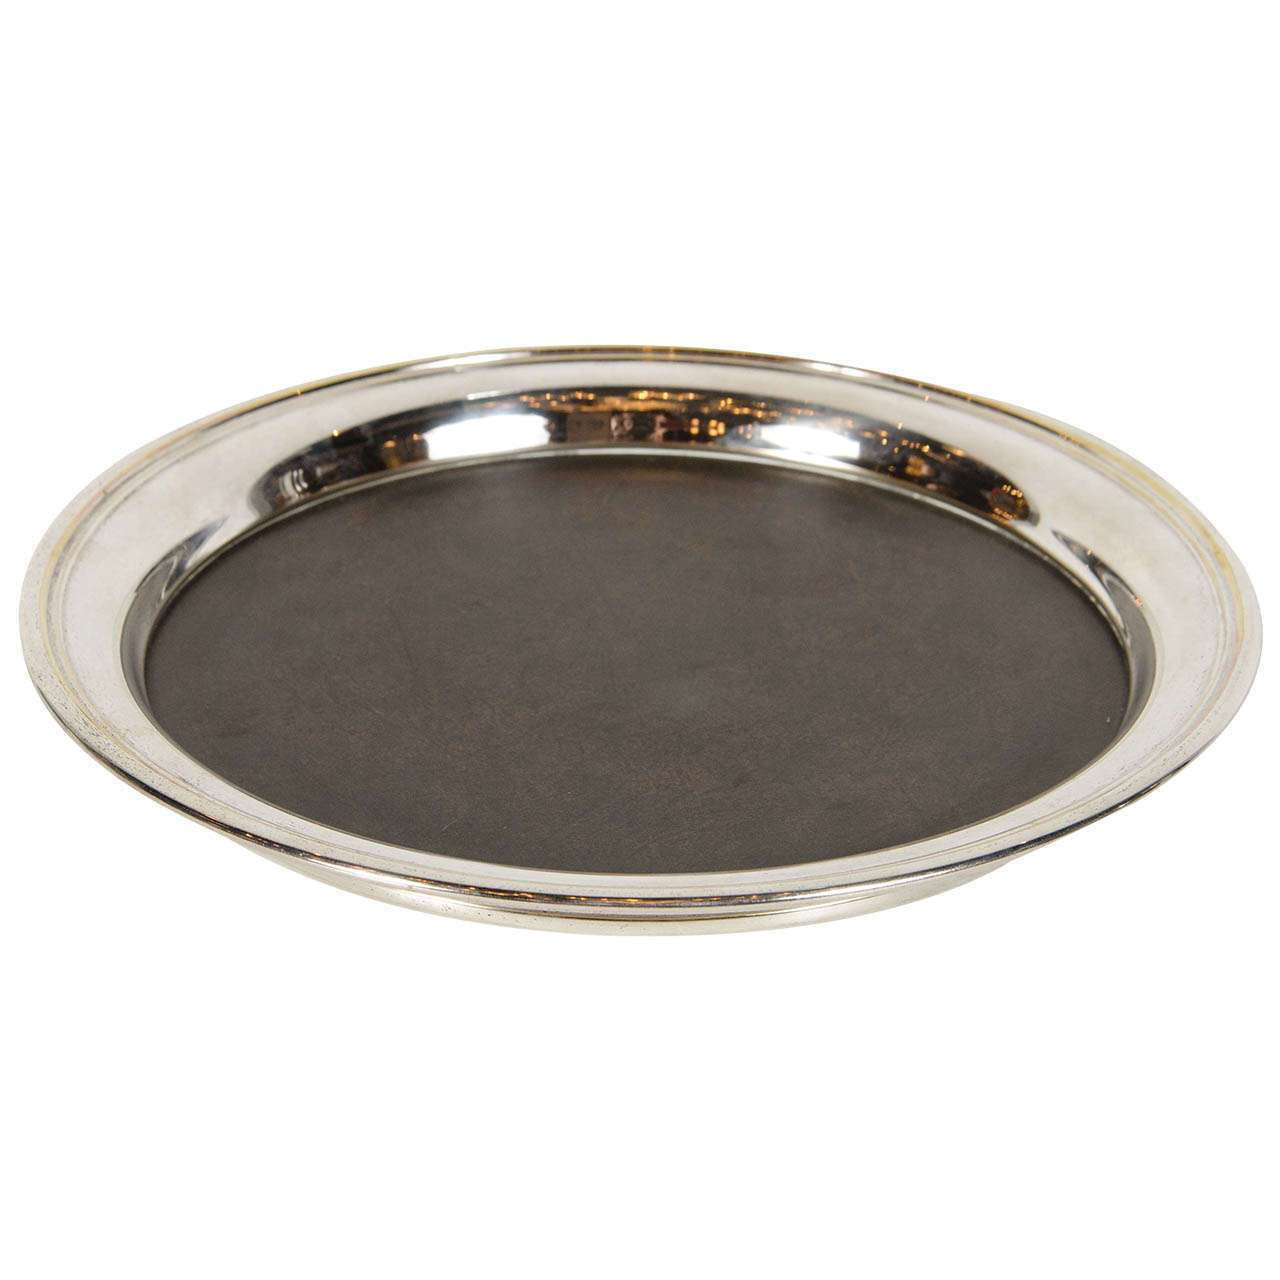 midcentury modern round serving or bar tray by crescent in polished nickel. midcentury modern round serving or bar tray by crescent in